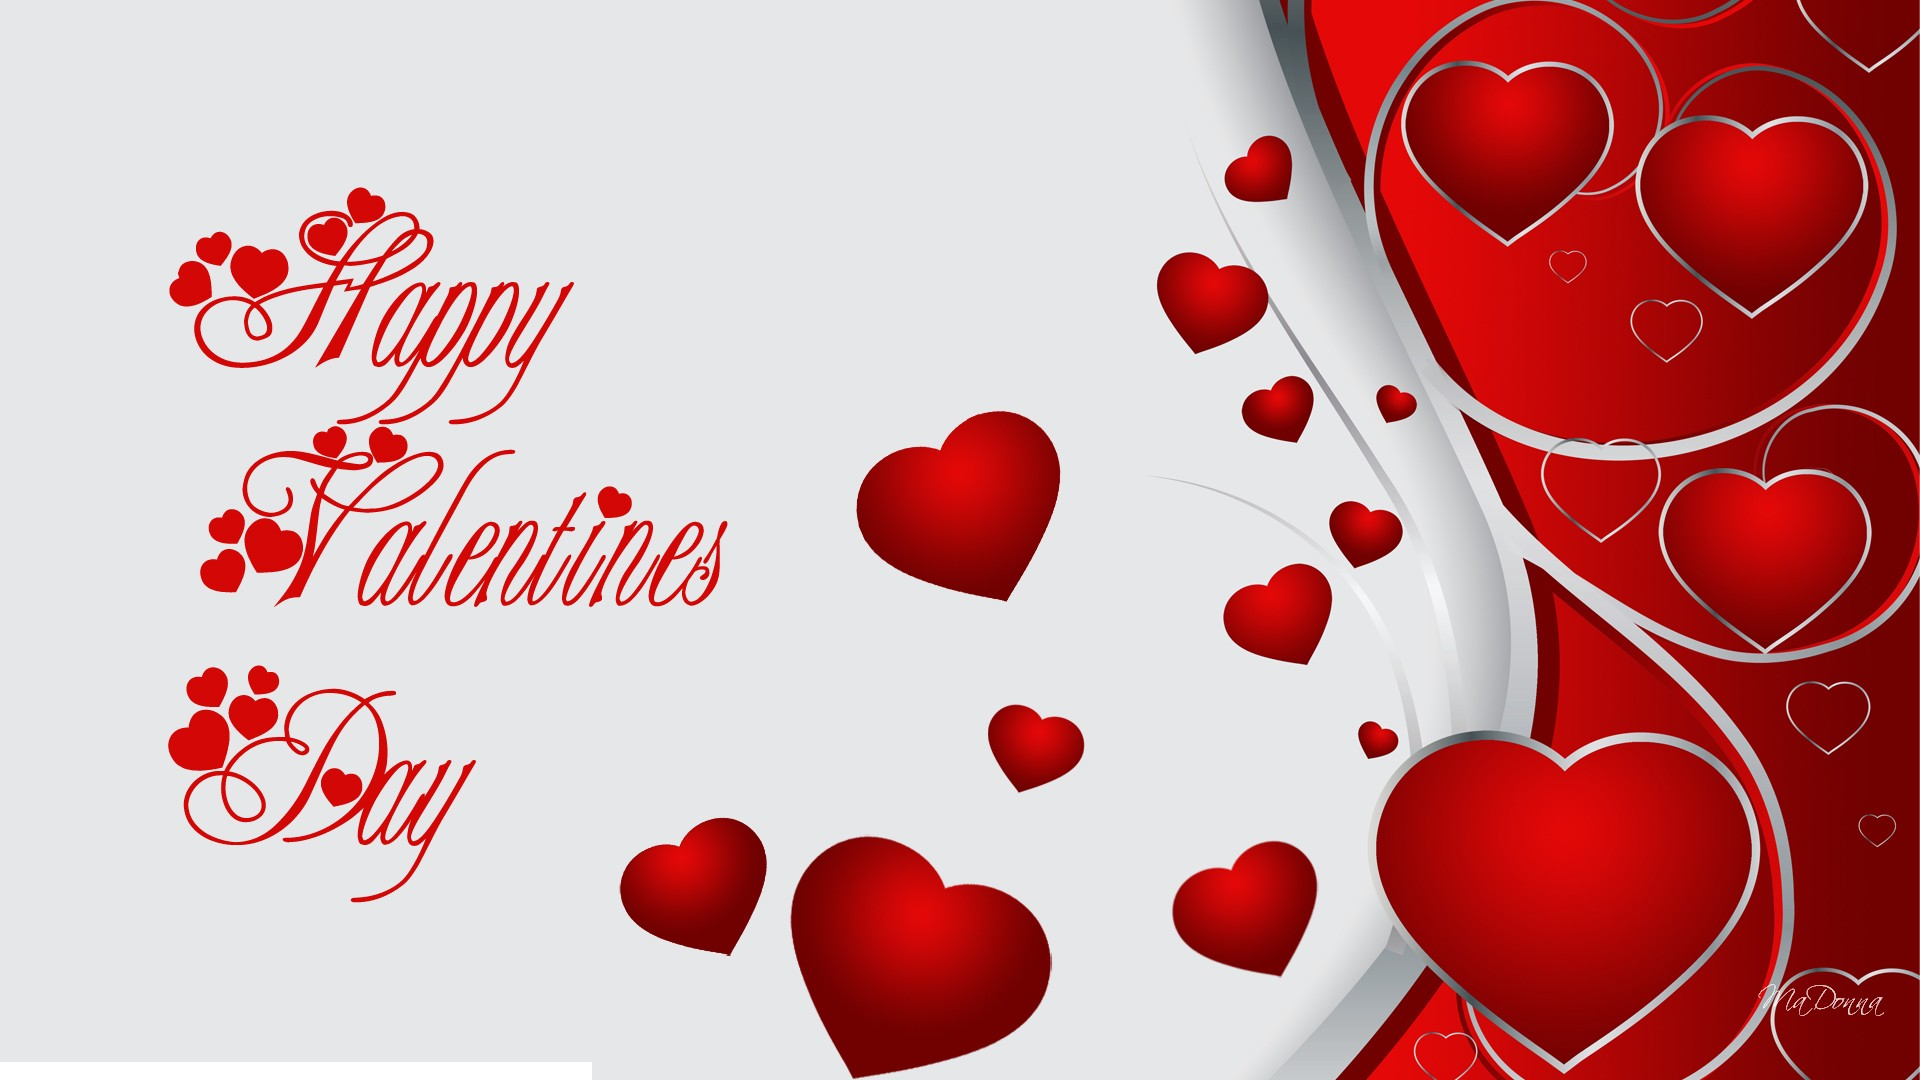 Happy Valentine Day HD Wallpapers for Pc